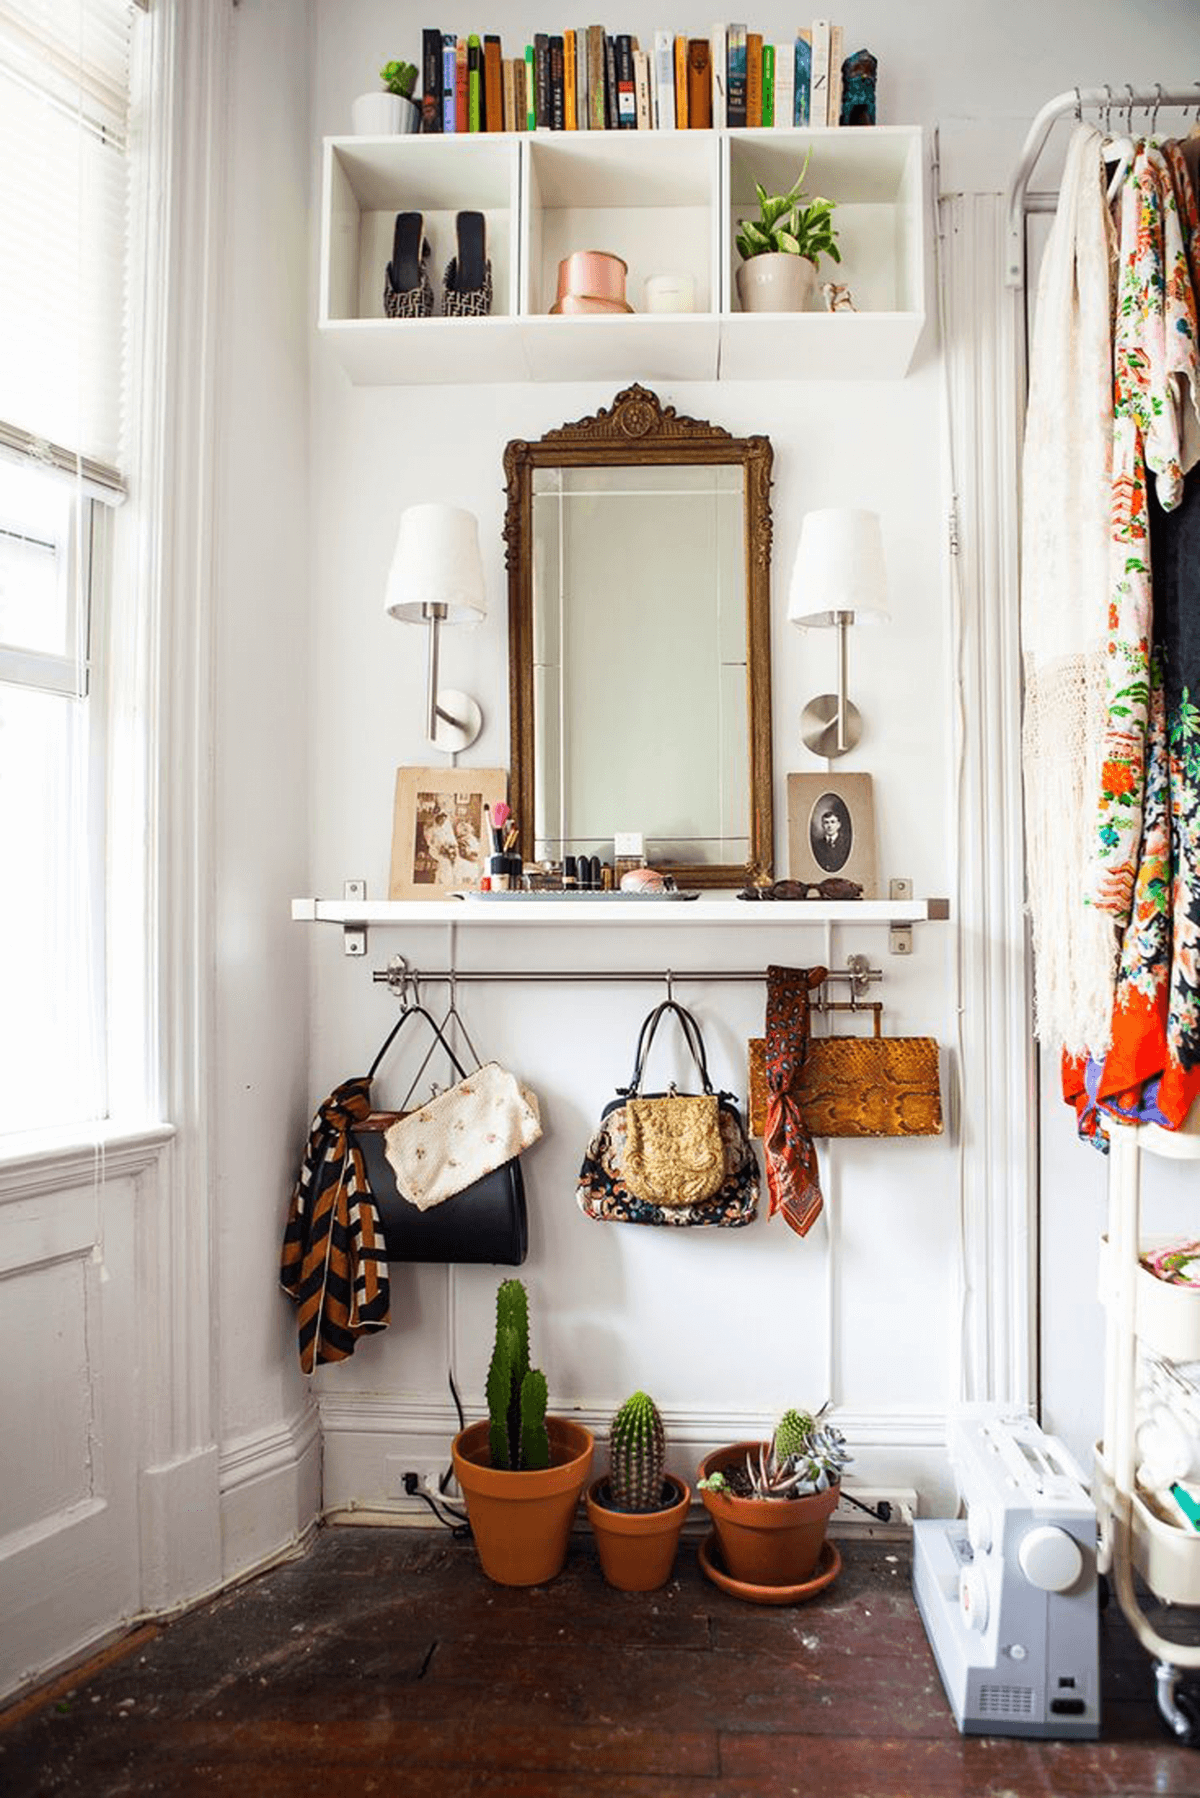 29+ Best Entryway Ideas for Small Spaces #entrywayideas